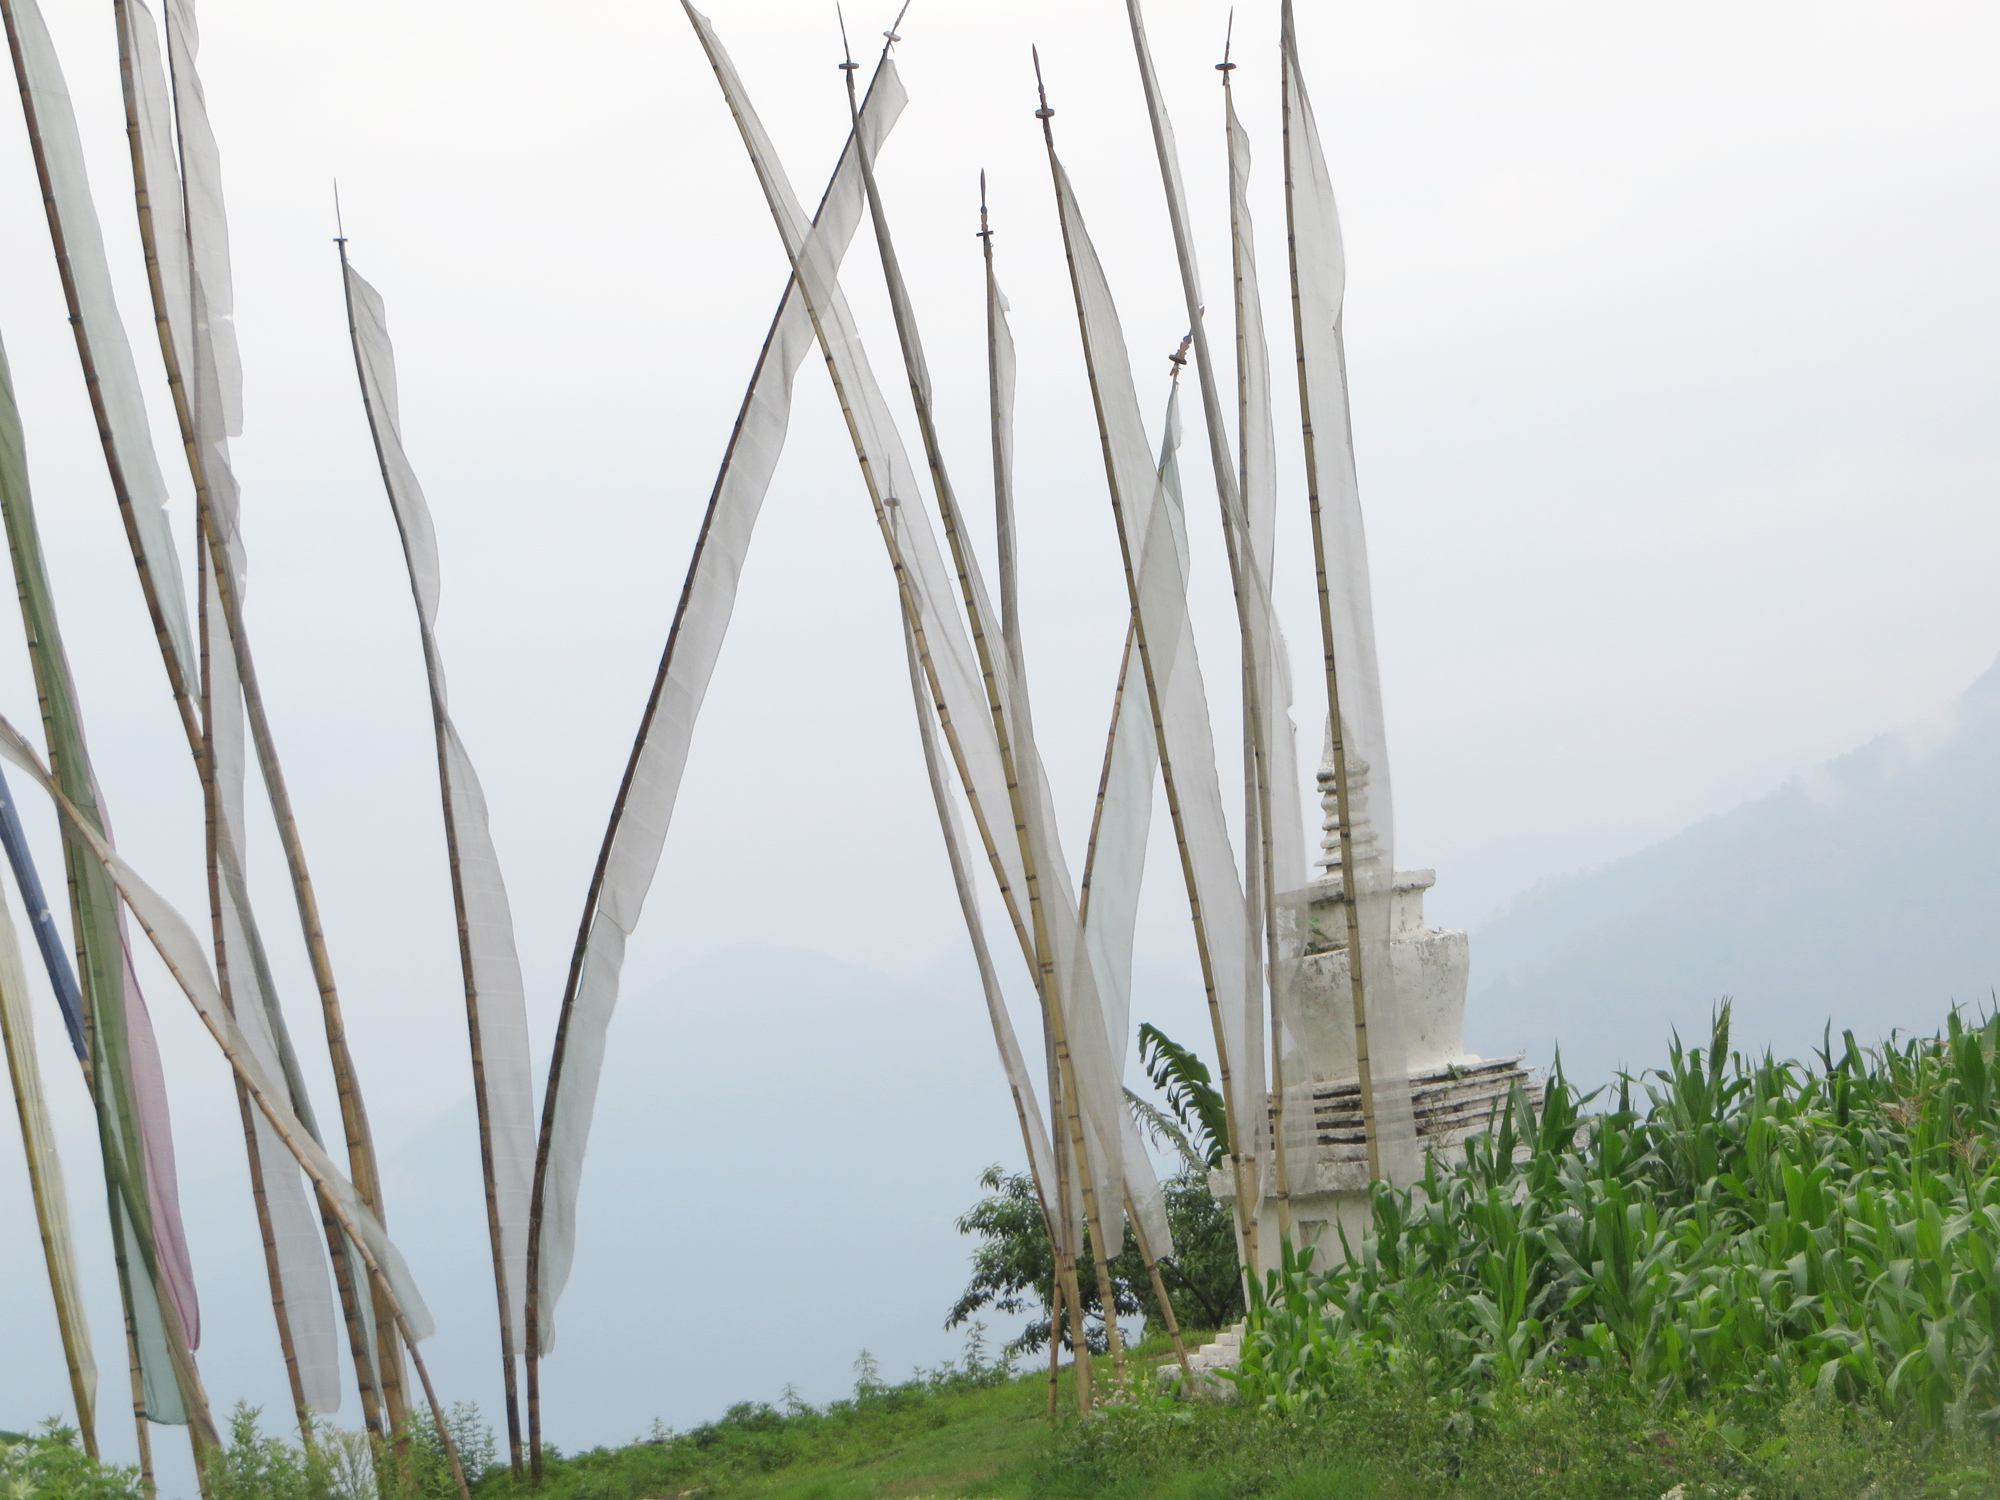 Vertical prayer flags2